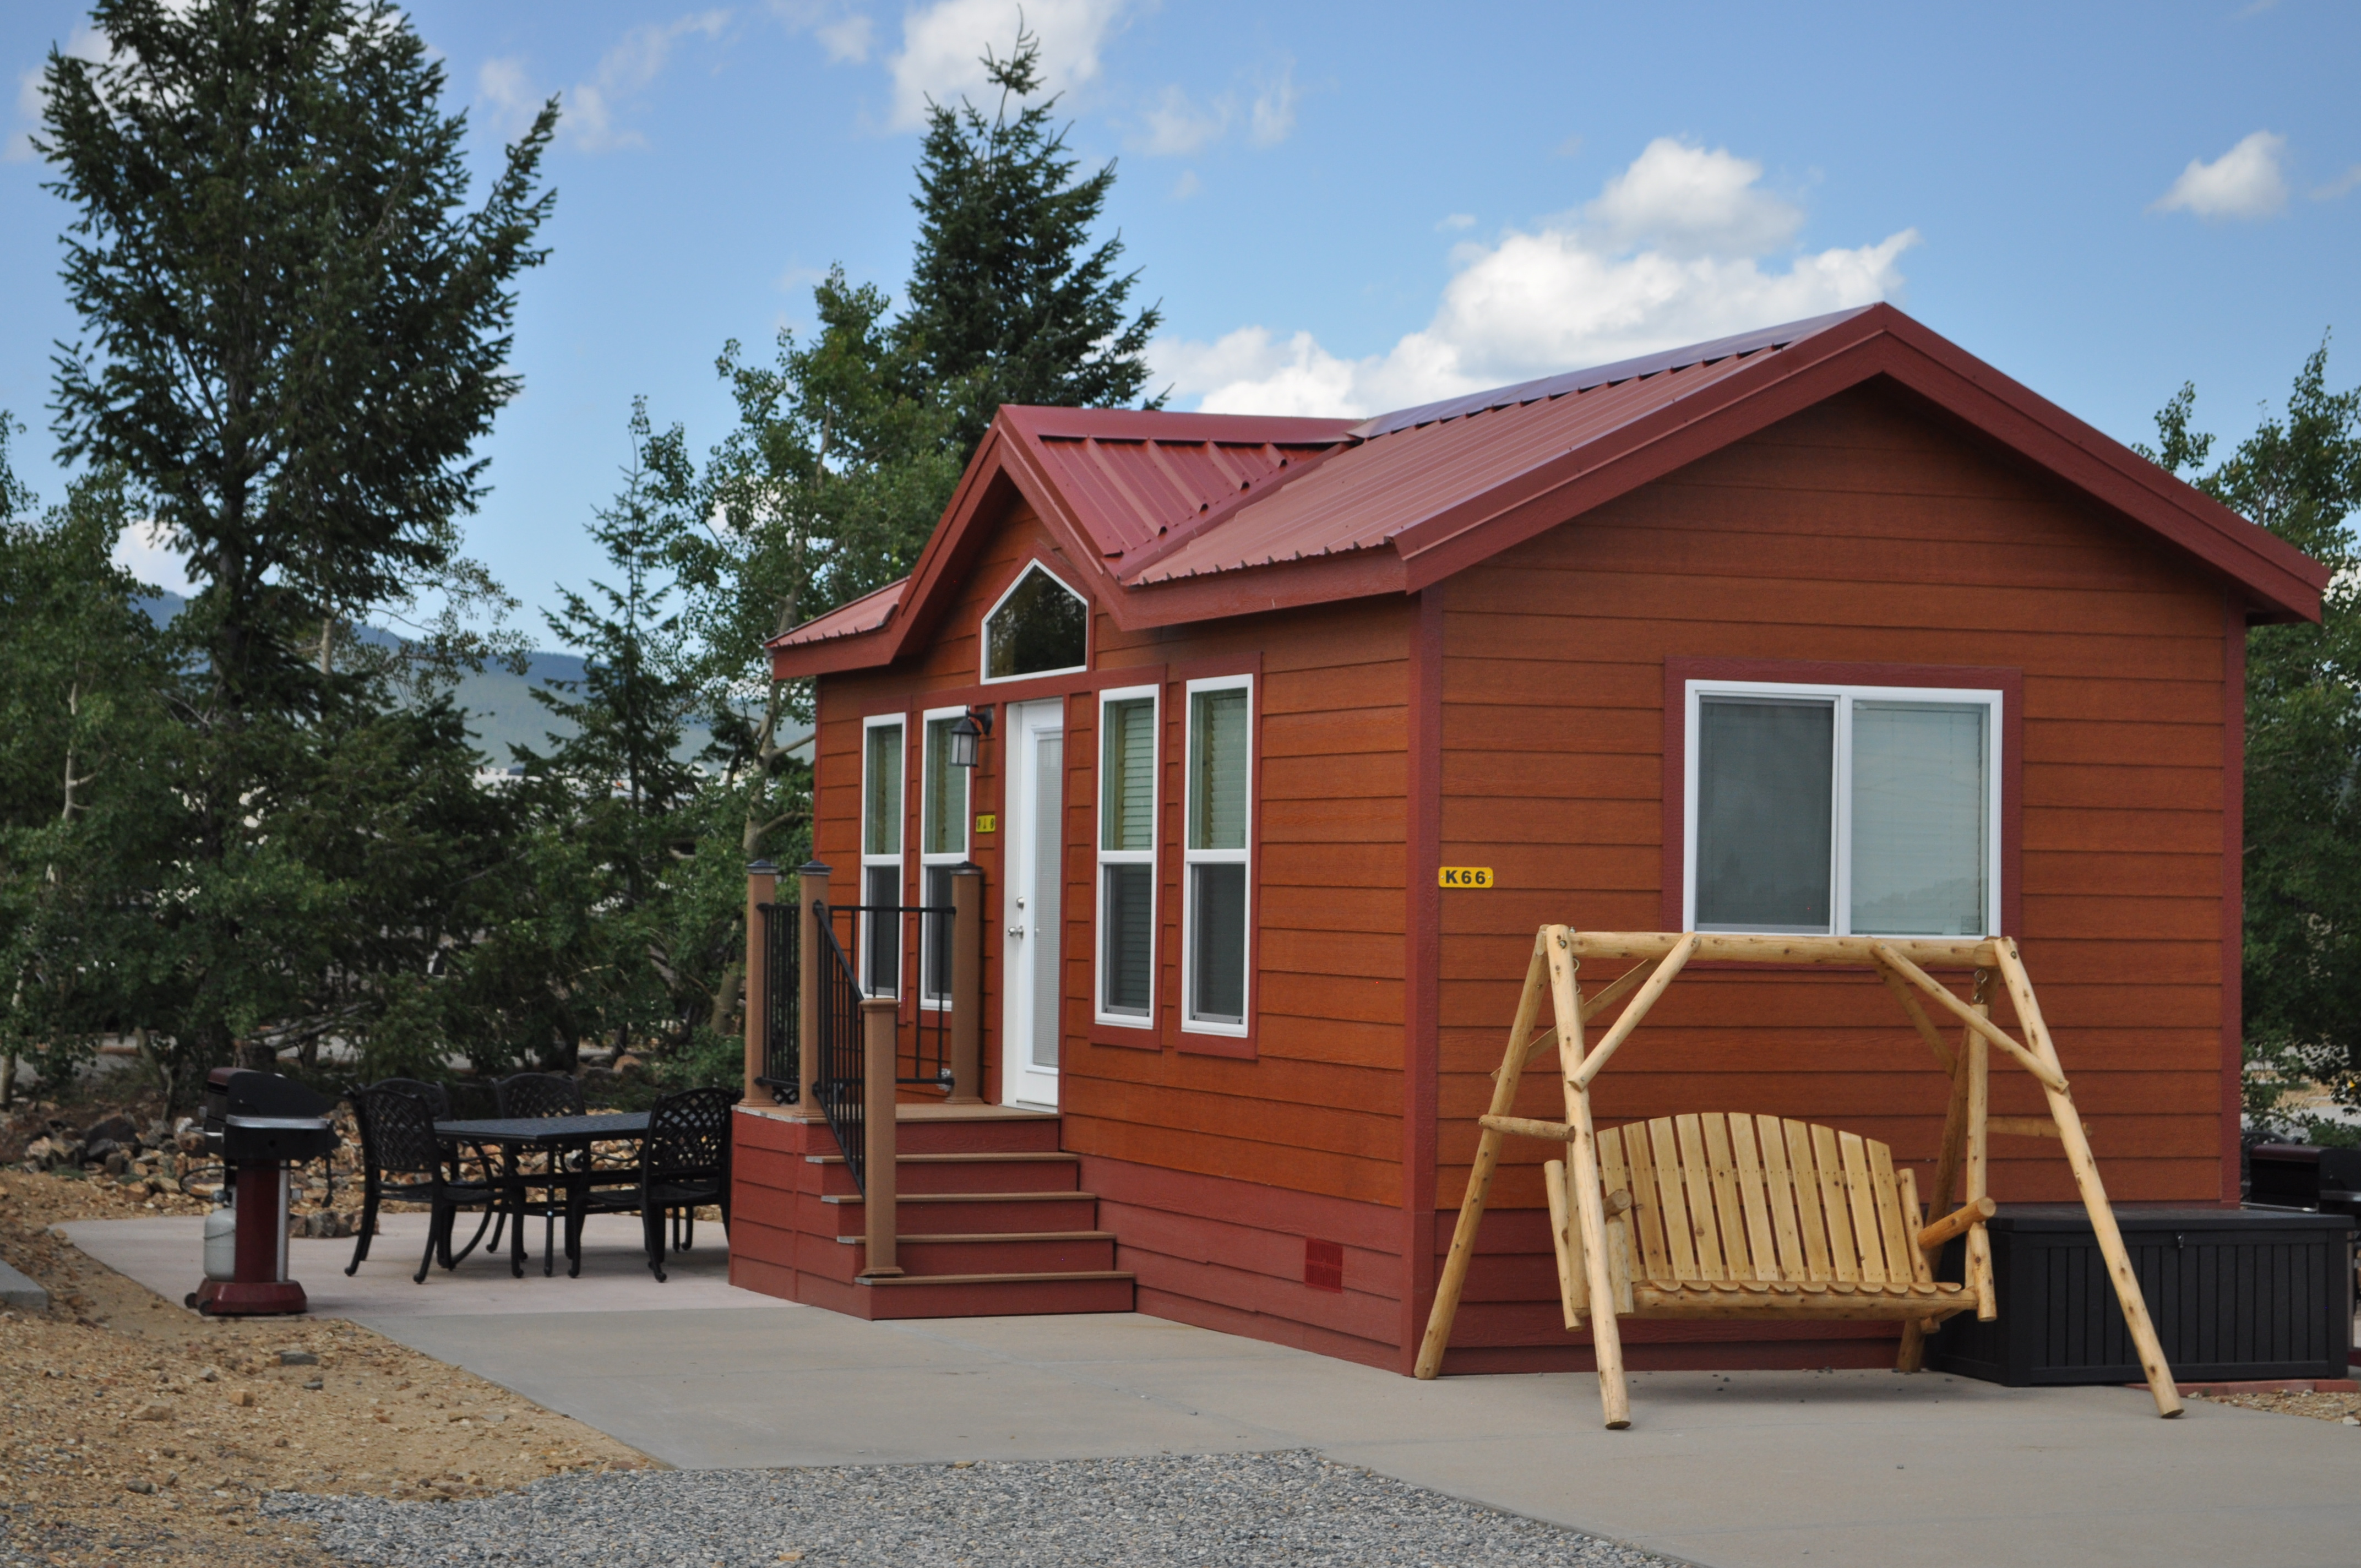 denver workshop of the building large school university winners at outward cabins colorado bound micro winner